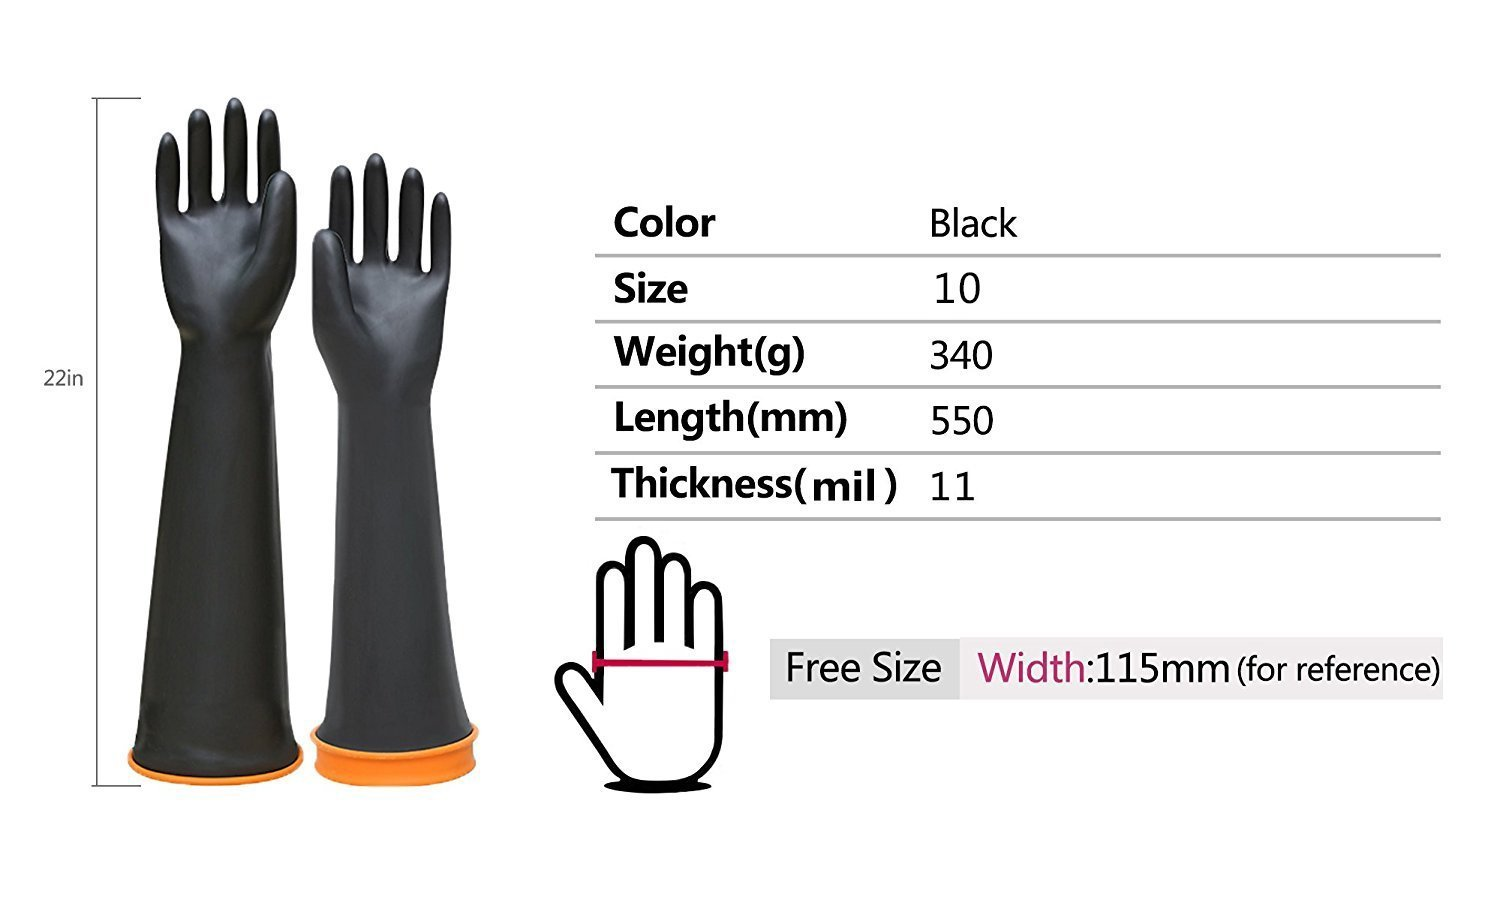 Double One Chemical Resistant Gloves,Safety Work Cleaning Protective Heavy Duty Industrial Gloves,Natural Latex Elbow Length 22'' Length Black 1 Pair Size 10 by DOUBLE ONE (Image #5)